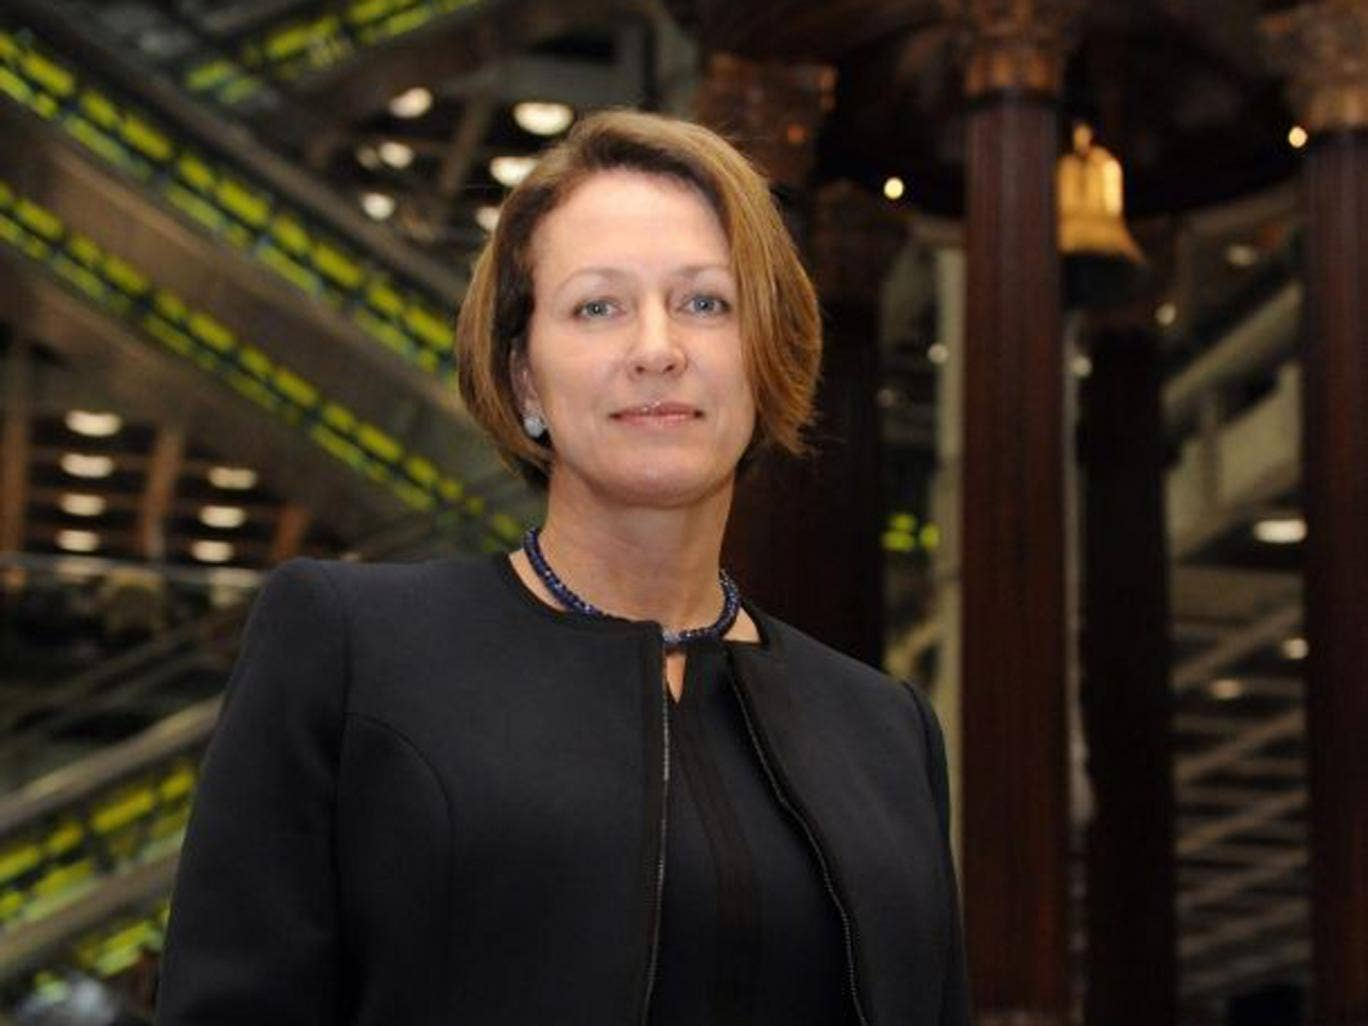 Inga Beale will take up the role as chief executive of Lloyd's of London in January 2014